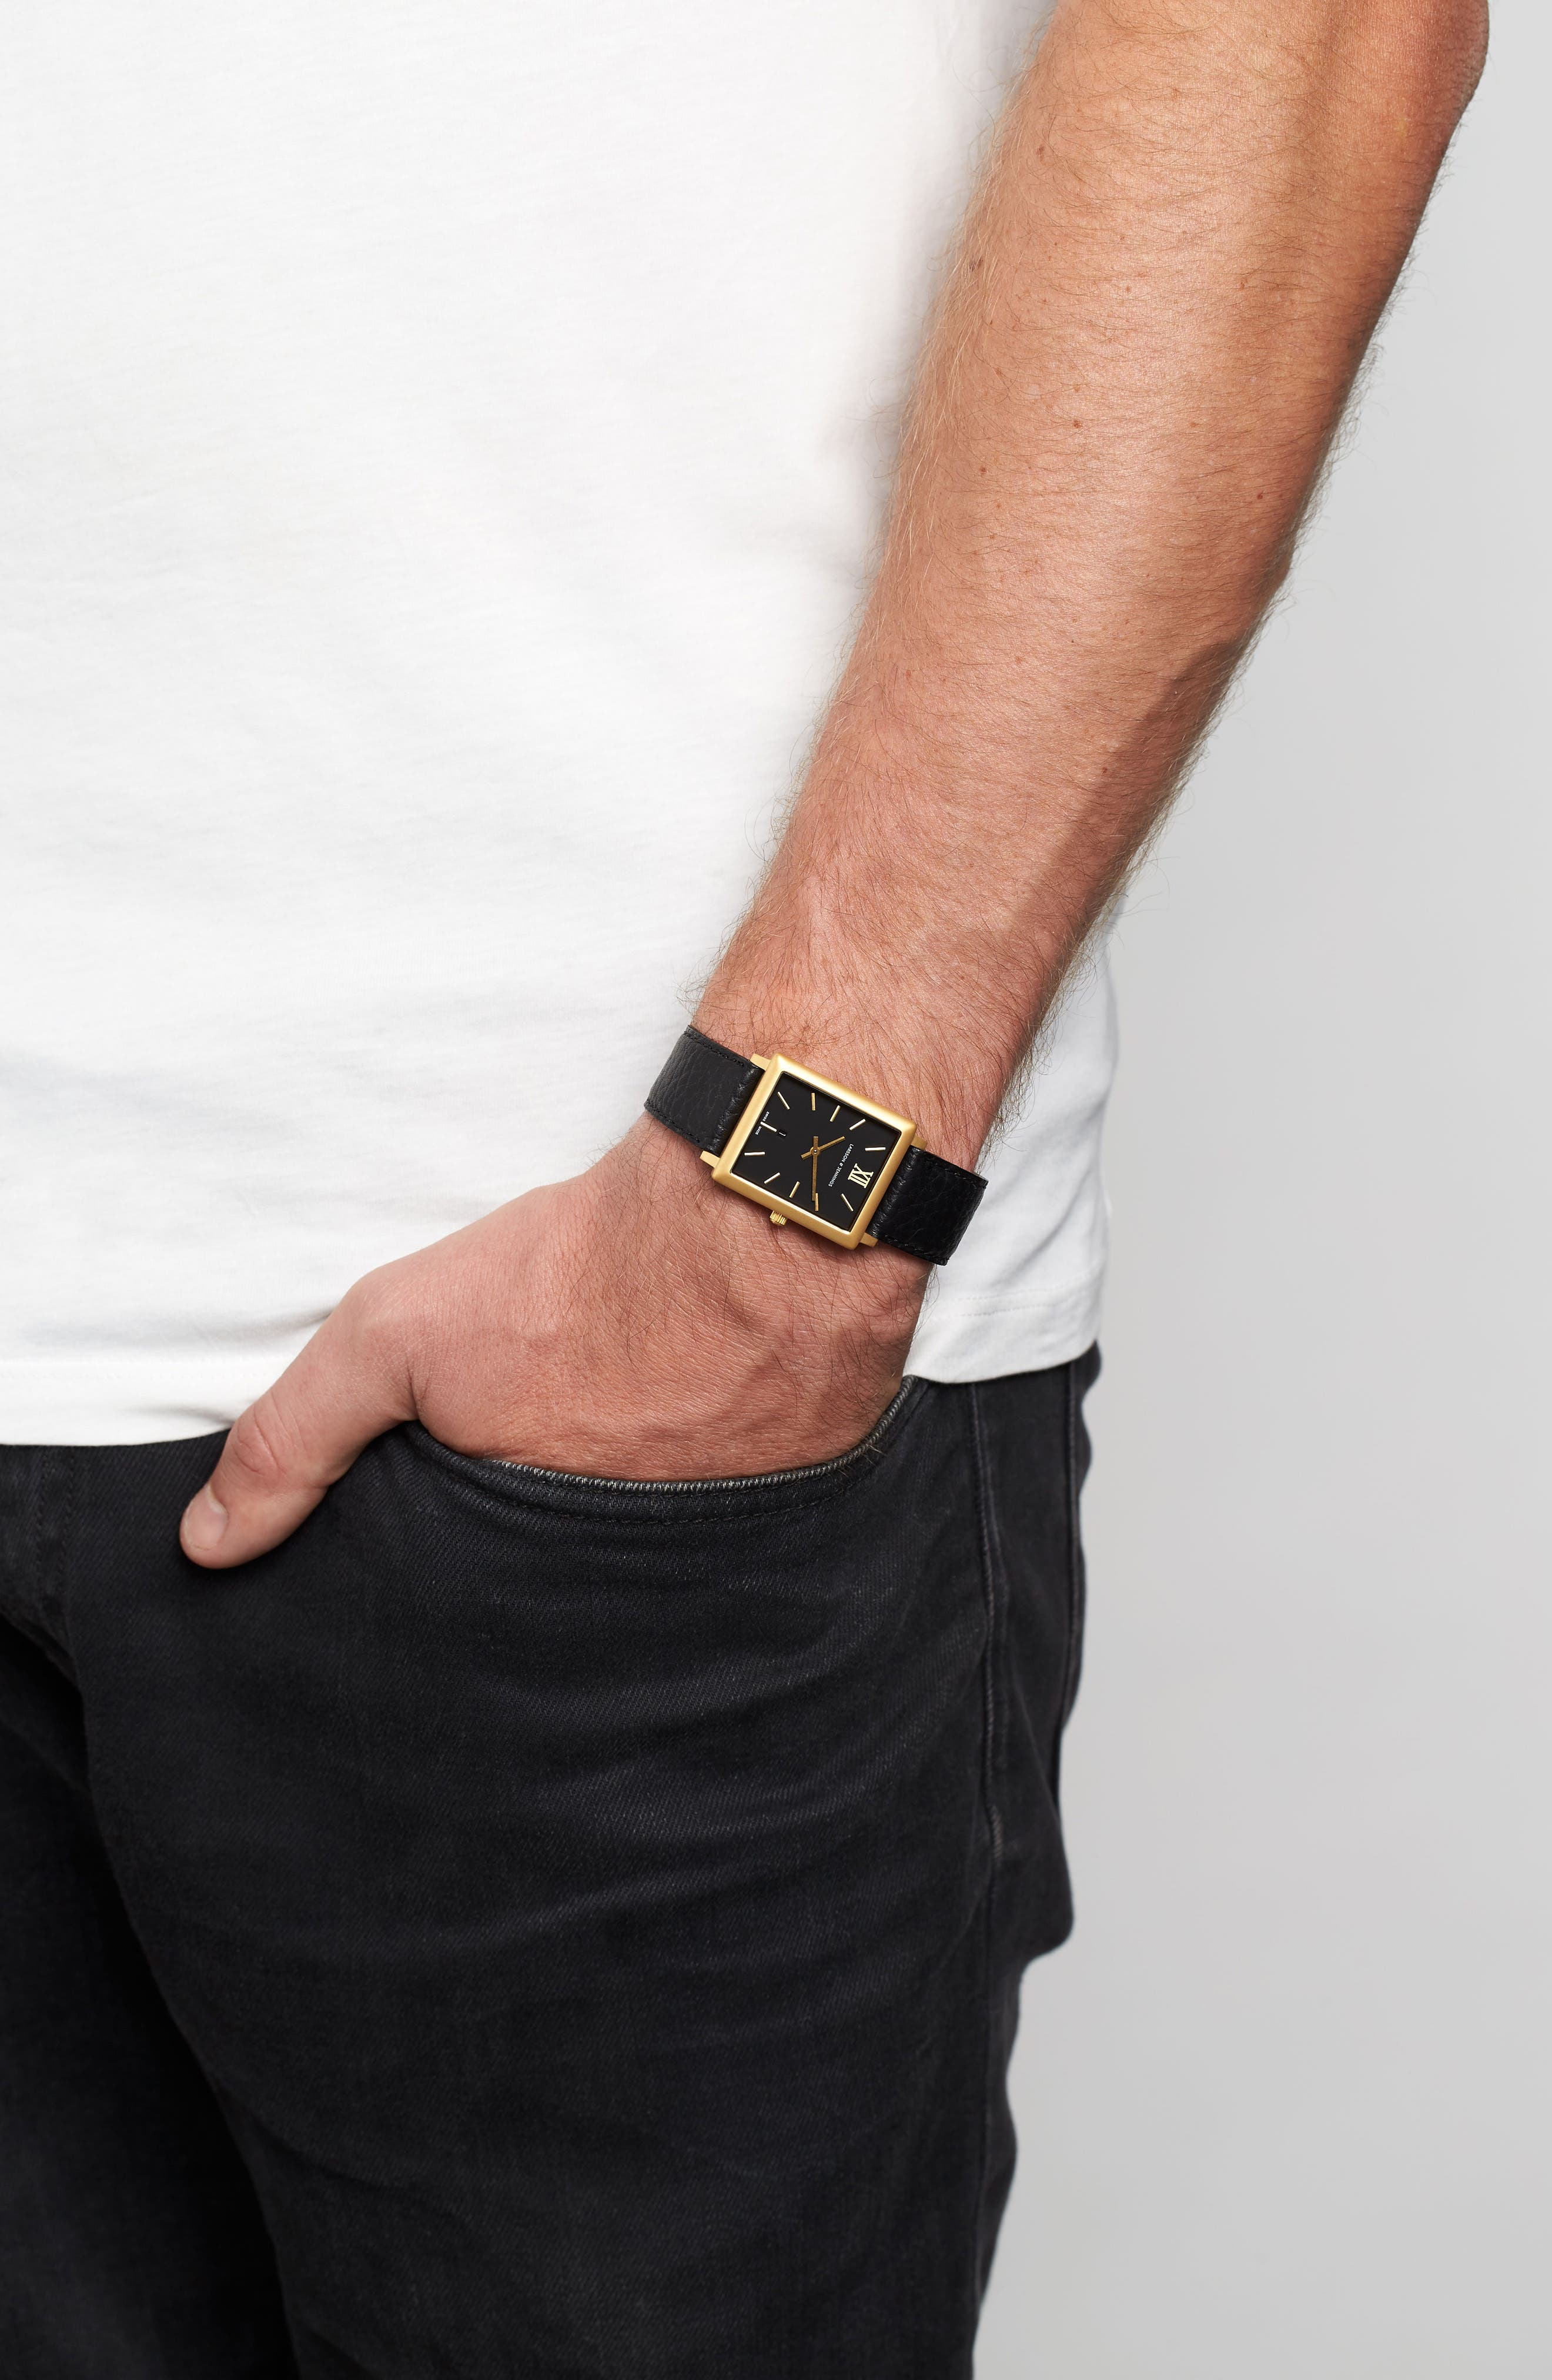 'Norse' Rectangular Leather Strap Watch, 29mm x 40mm,                             Alternate thumbnail 2, color,                             001